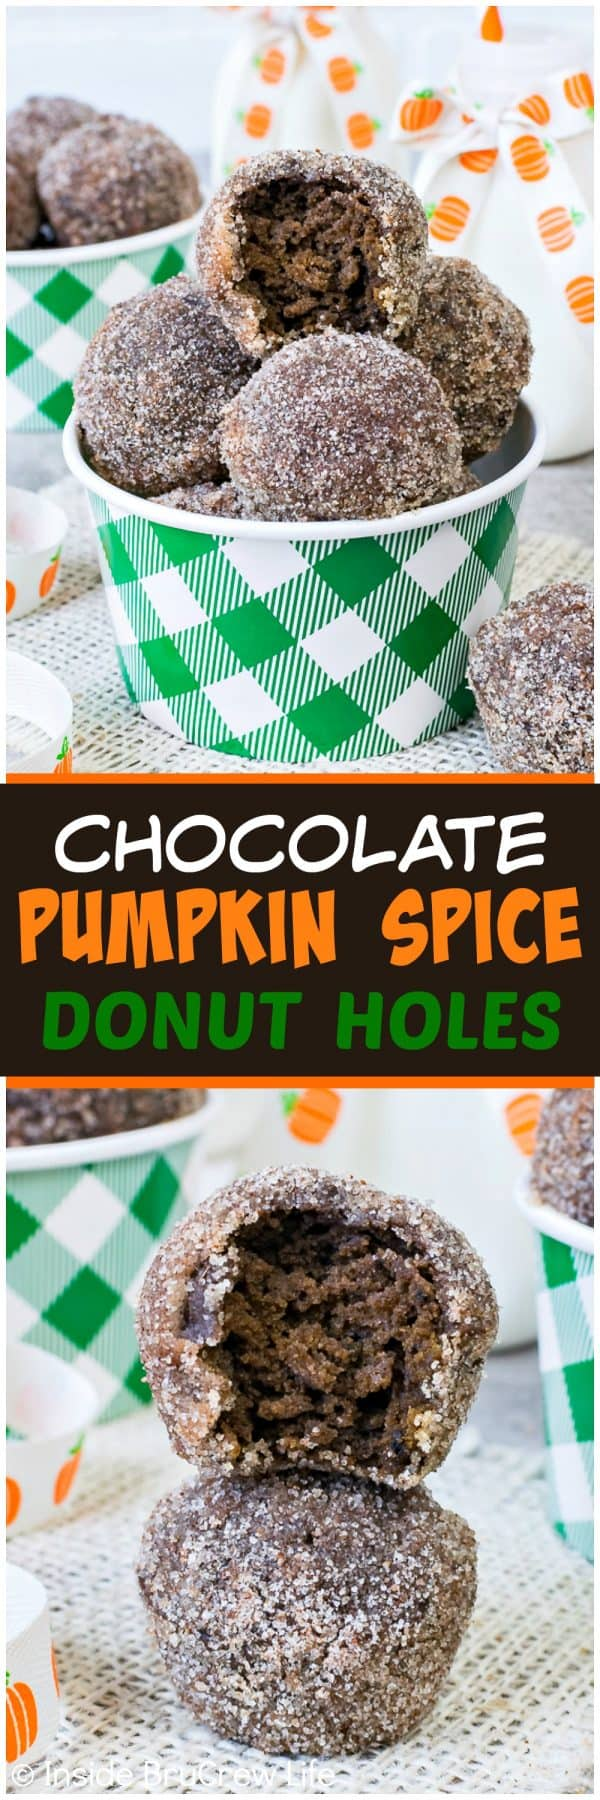 Chocolate Pumpkin Spice Donut Holes - little soft donut holes coated in a crunchy sugar coating makes an awesome breakfast treat. This is a must make recipe for fall!